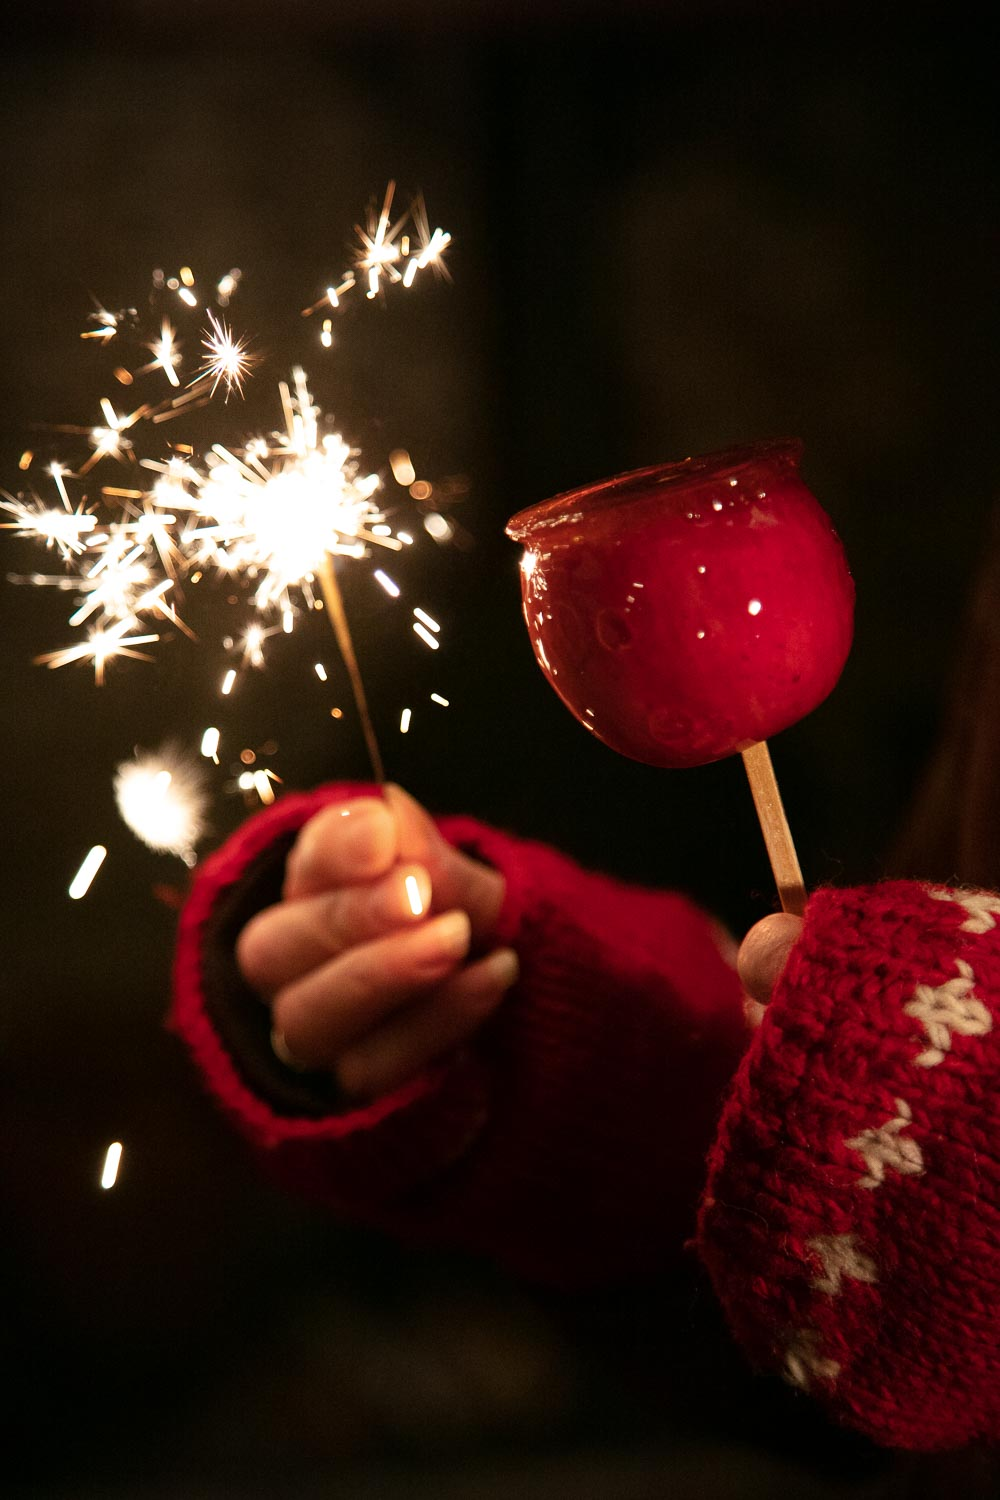 Toffee Apple and Sparkler.